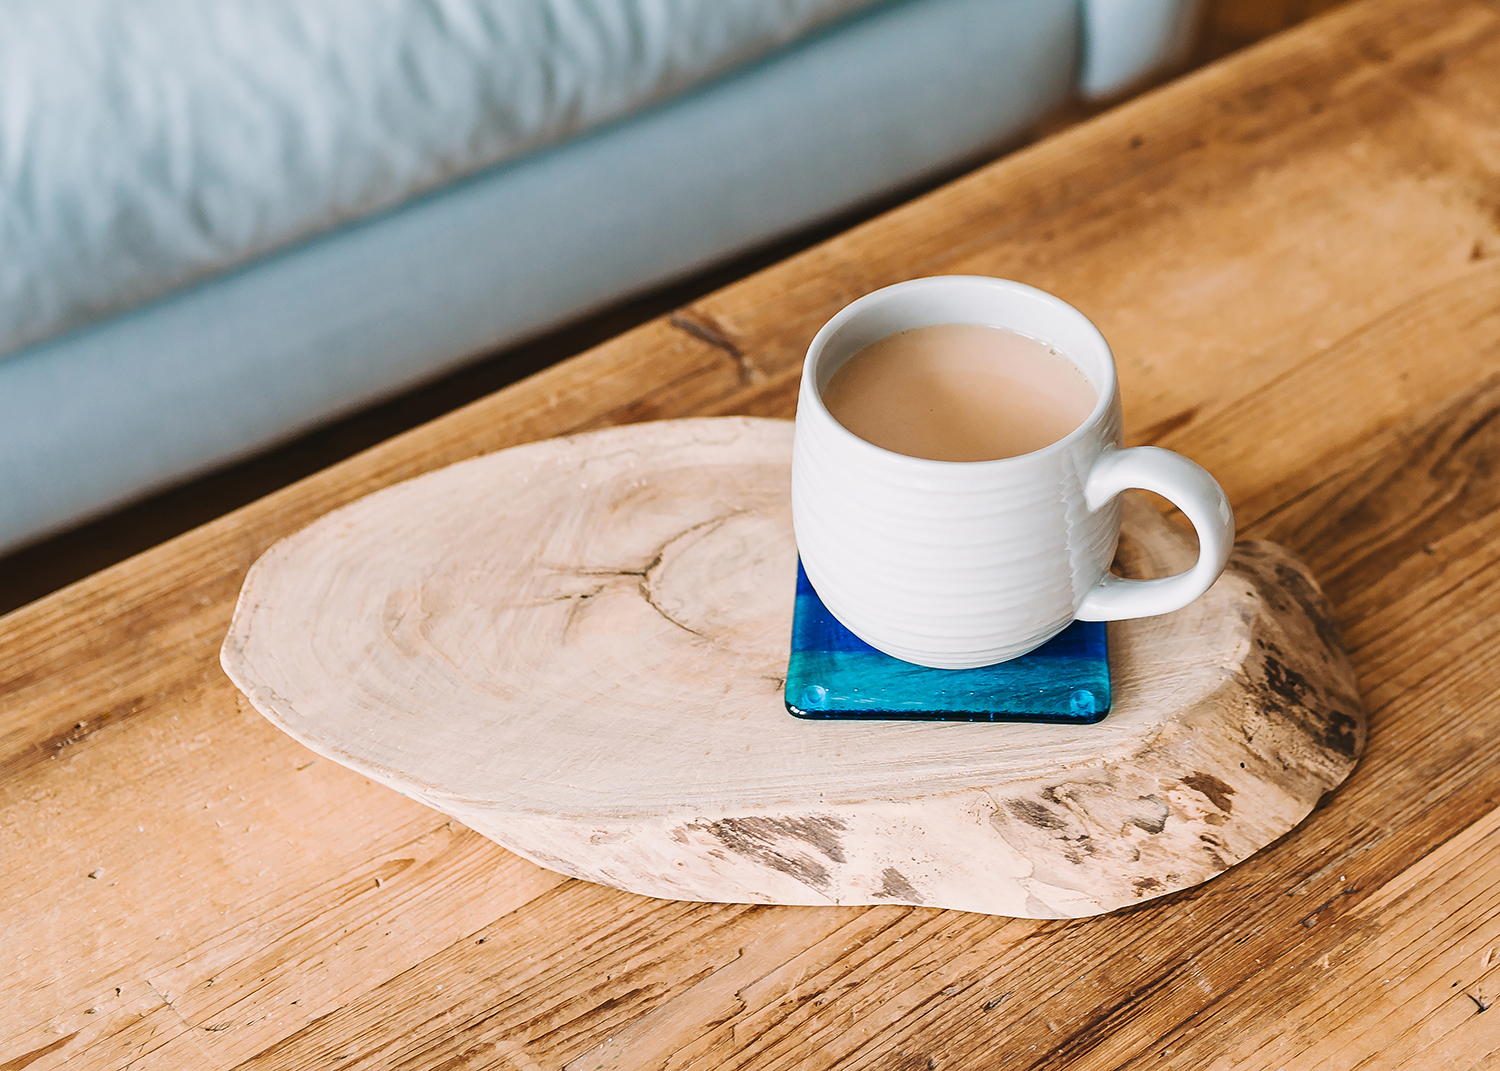 cup of tea on glass coaster